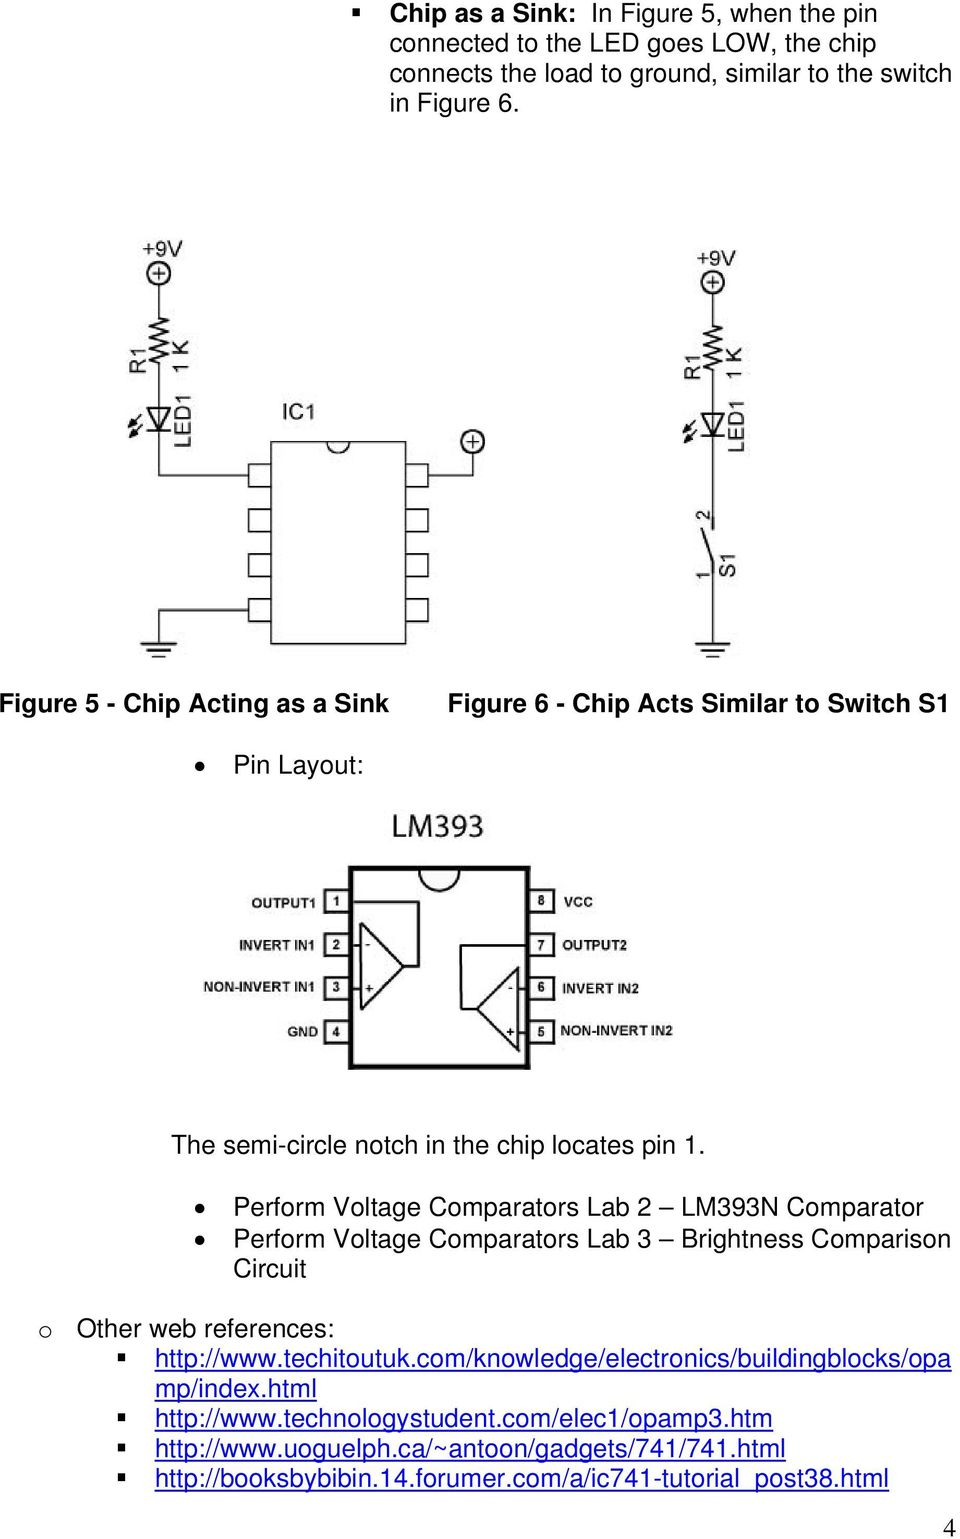 Perform Voltage Comparators Lab 2 LM393N Comparator Perform Voltage Comparators Lab 3 Brightness Comparison Circuit o Other web references: http://www.techitoutuk.